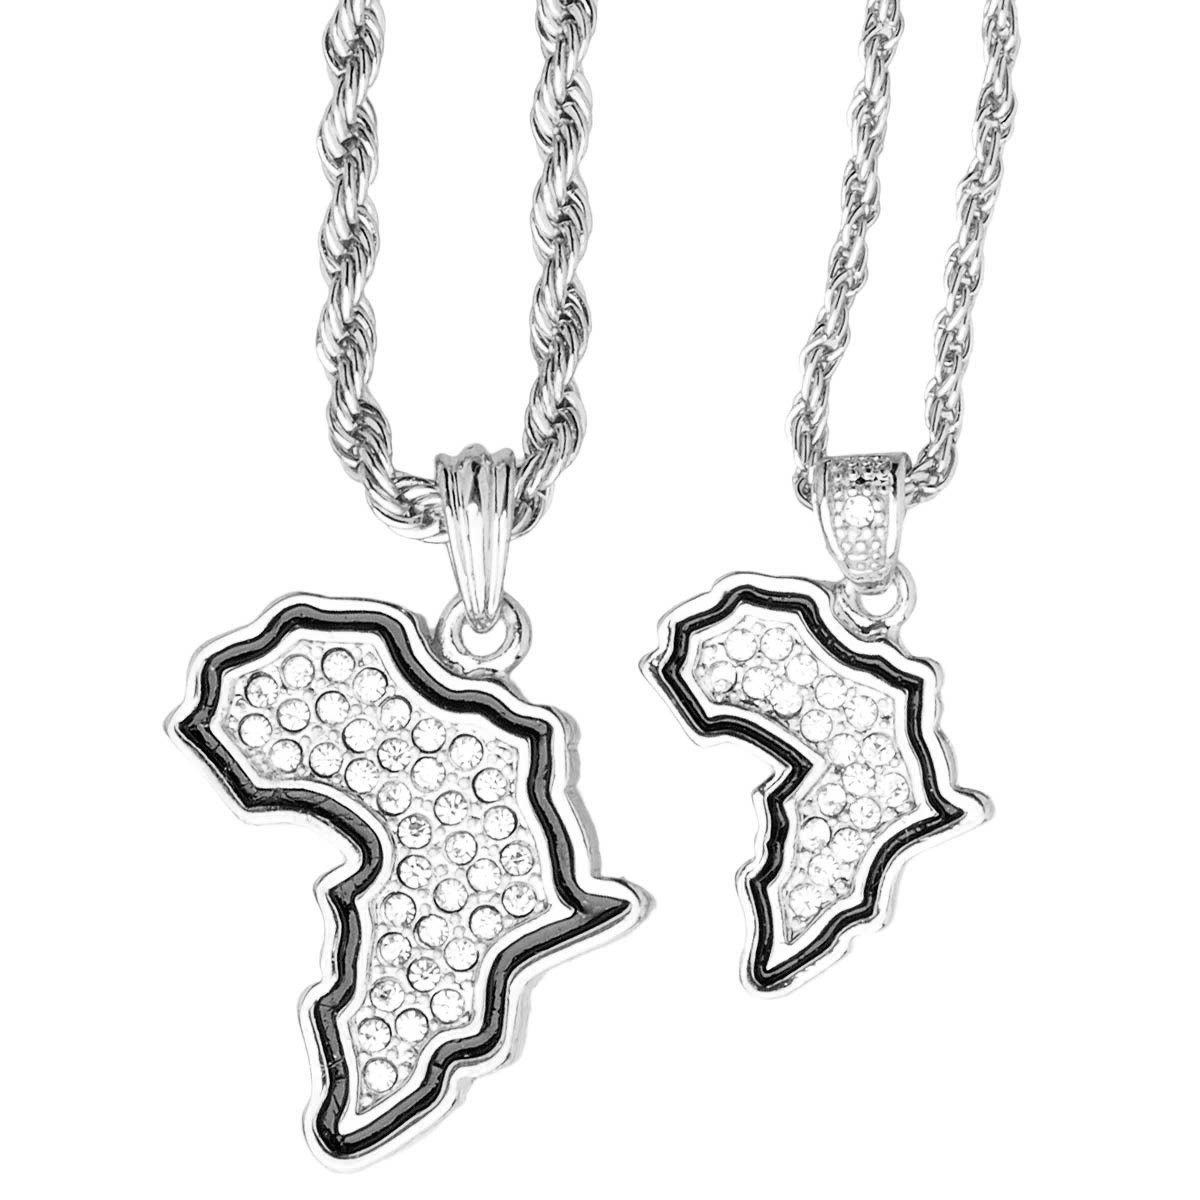 Iced Out Bling Mini Pendant Chain Set - 2 x AFRICA silver - Uni / strieborná